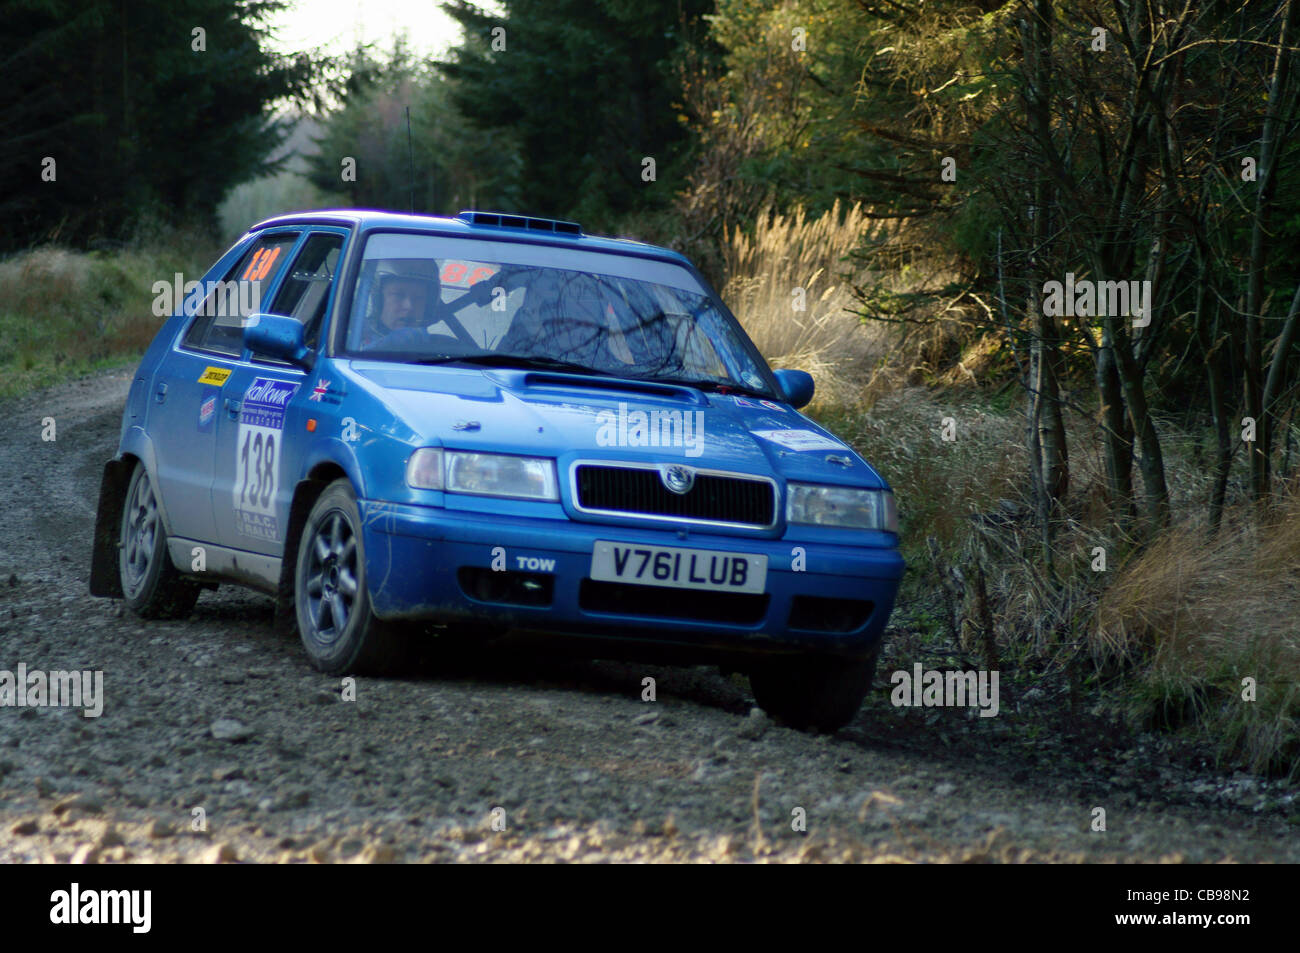 skoda felicia rally car stock photo royalty free image 41386382 alamy. Black Bedroom Furniture Sets. Home Design Ideas